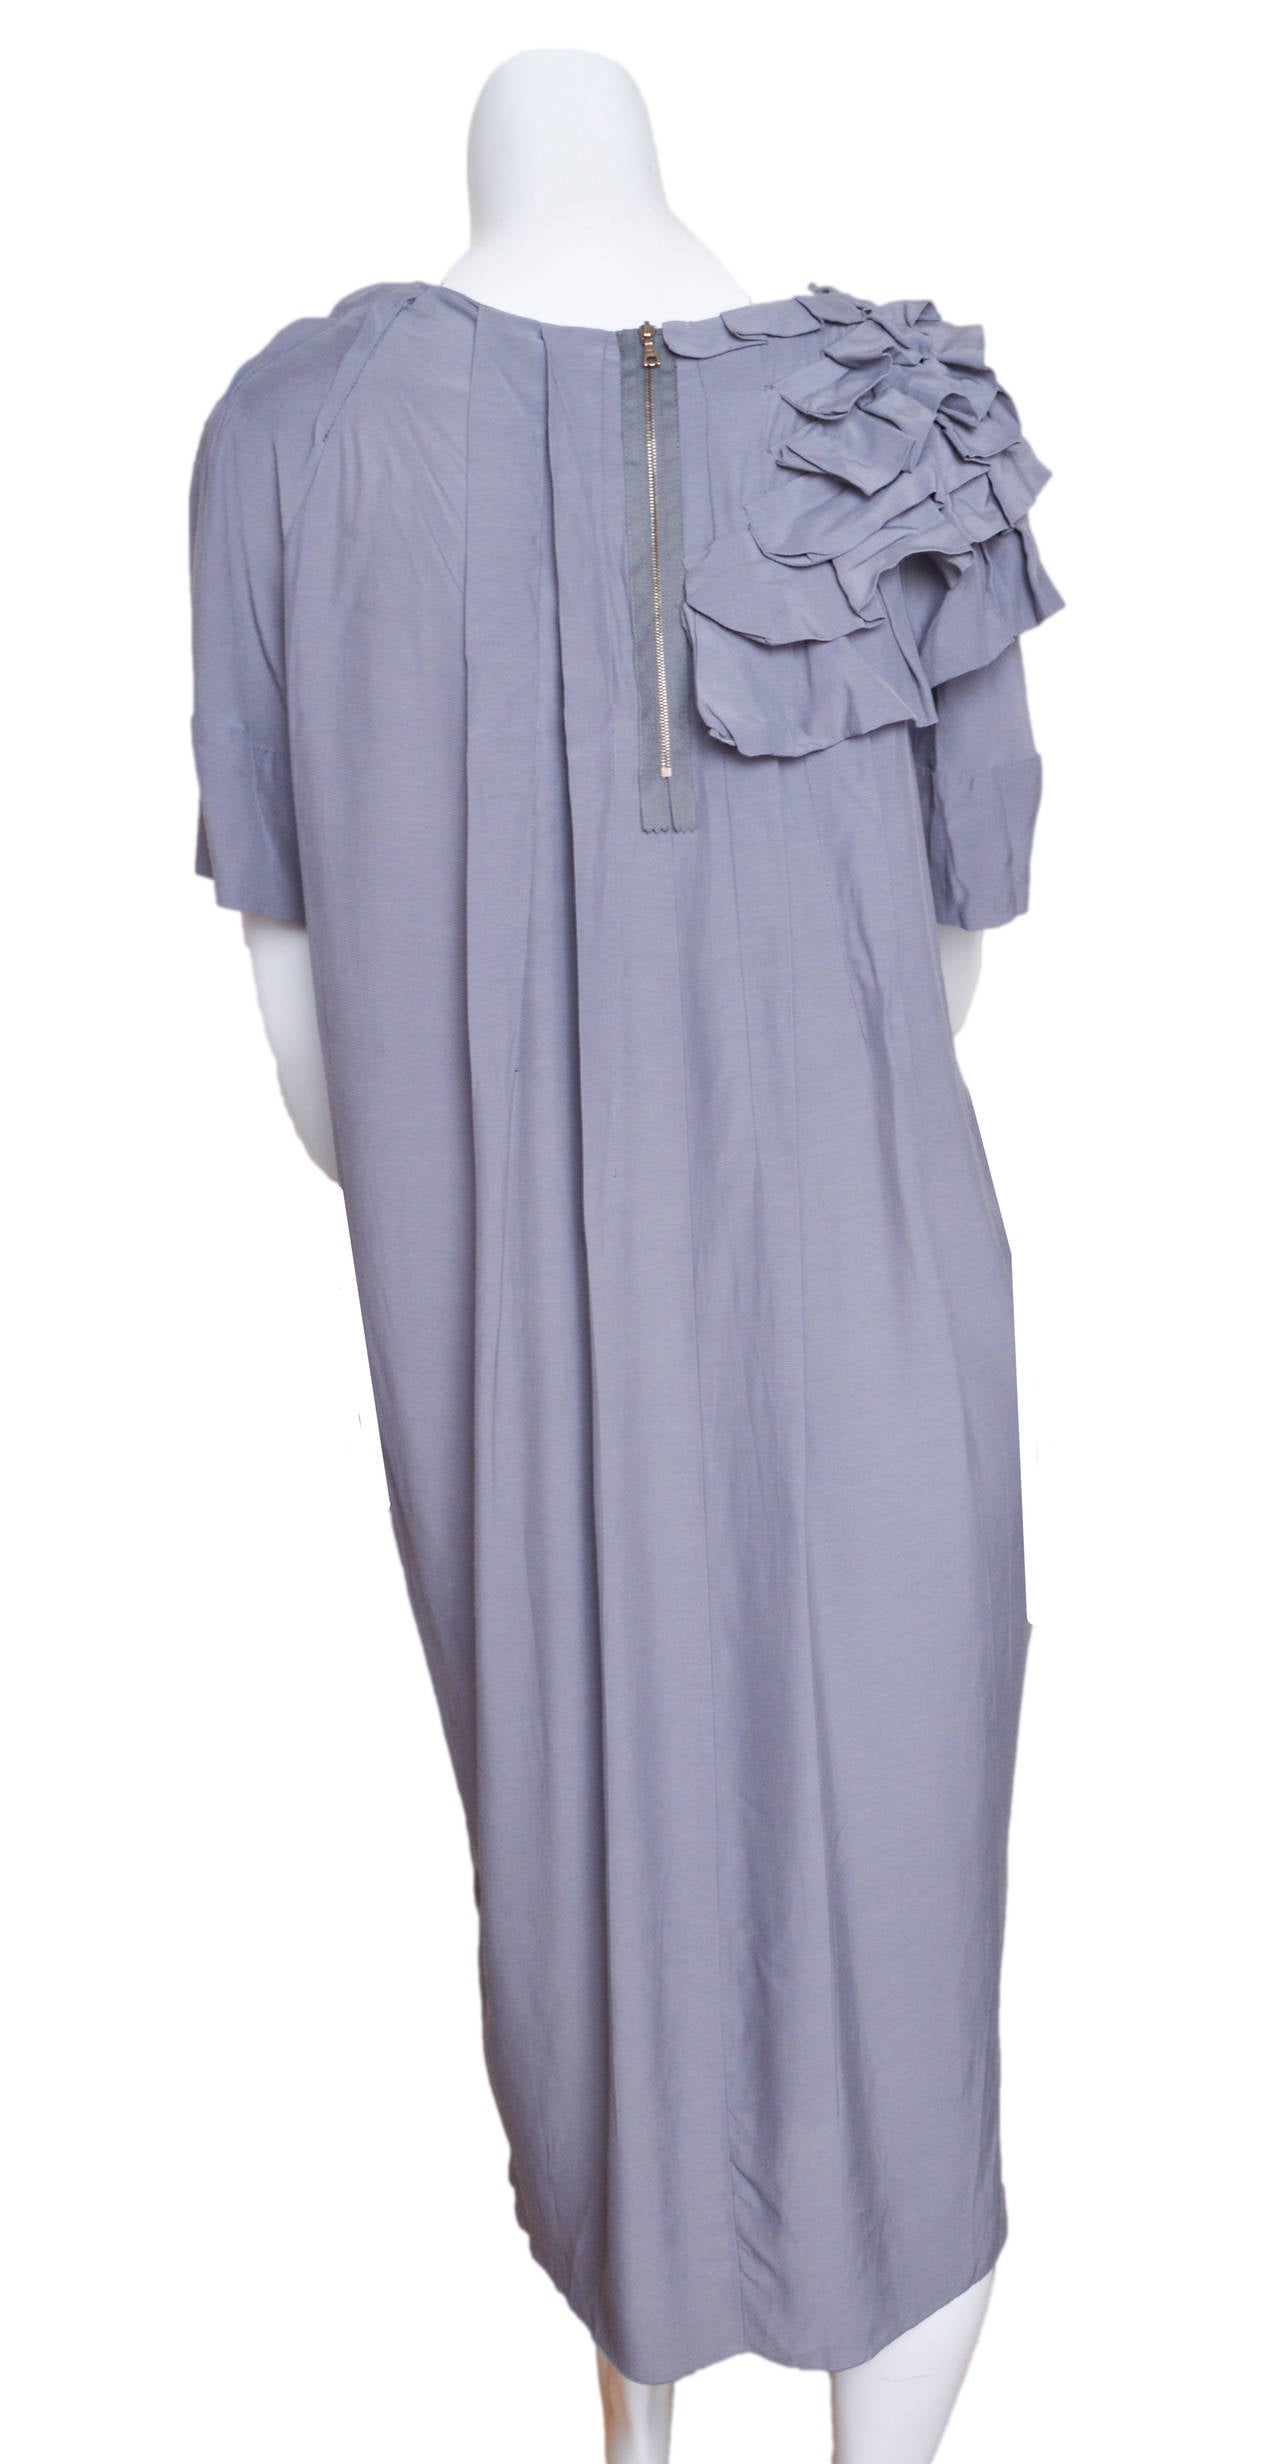 Marni Gray Ruffle Shift Dress Size 42 In Excellent Condition For Sale In San Francisco, CA